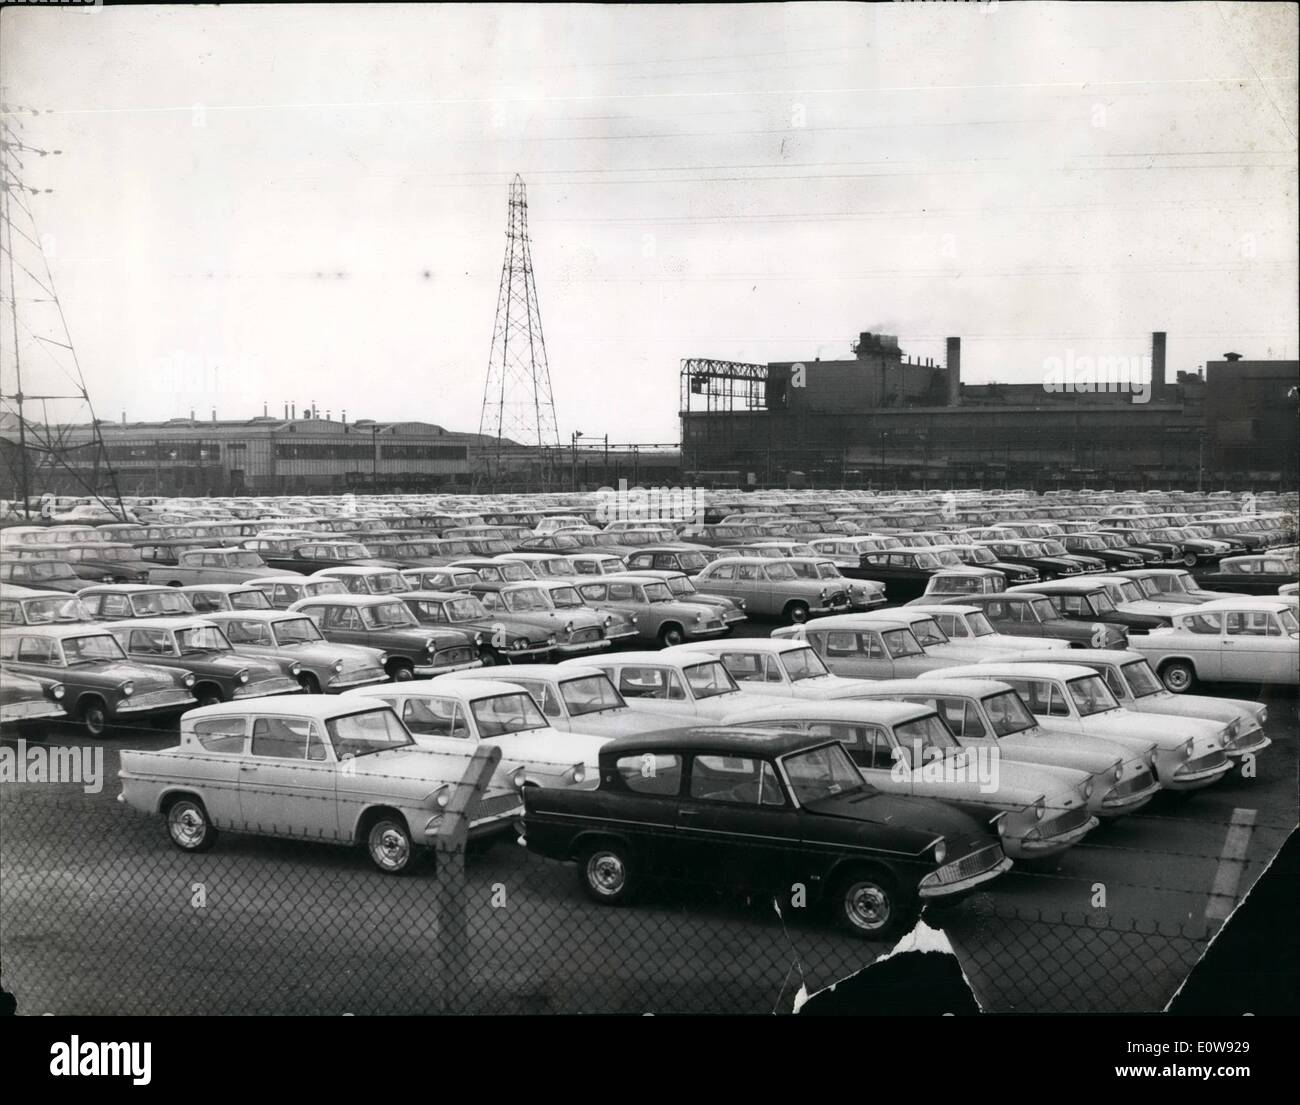 Feb. 02, 1962 - Car continue to Pile up at Fords. Drivers strike creates Bottleneck: The week-old strike of 600 Ford Car delivery drivers - employed by contrasting firma - is creating a vast pile-up of employed cars - in the company Car Parks at Degenham. Further trouble was created yesterday when 240 men who do the final ''spit-and-polish'' work on cars - want on strike because they objected to the Company using their own drivers, who had been helping by transferring completed cars to other car parks - to avoid a bottlen . - Stock Image